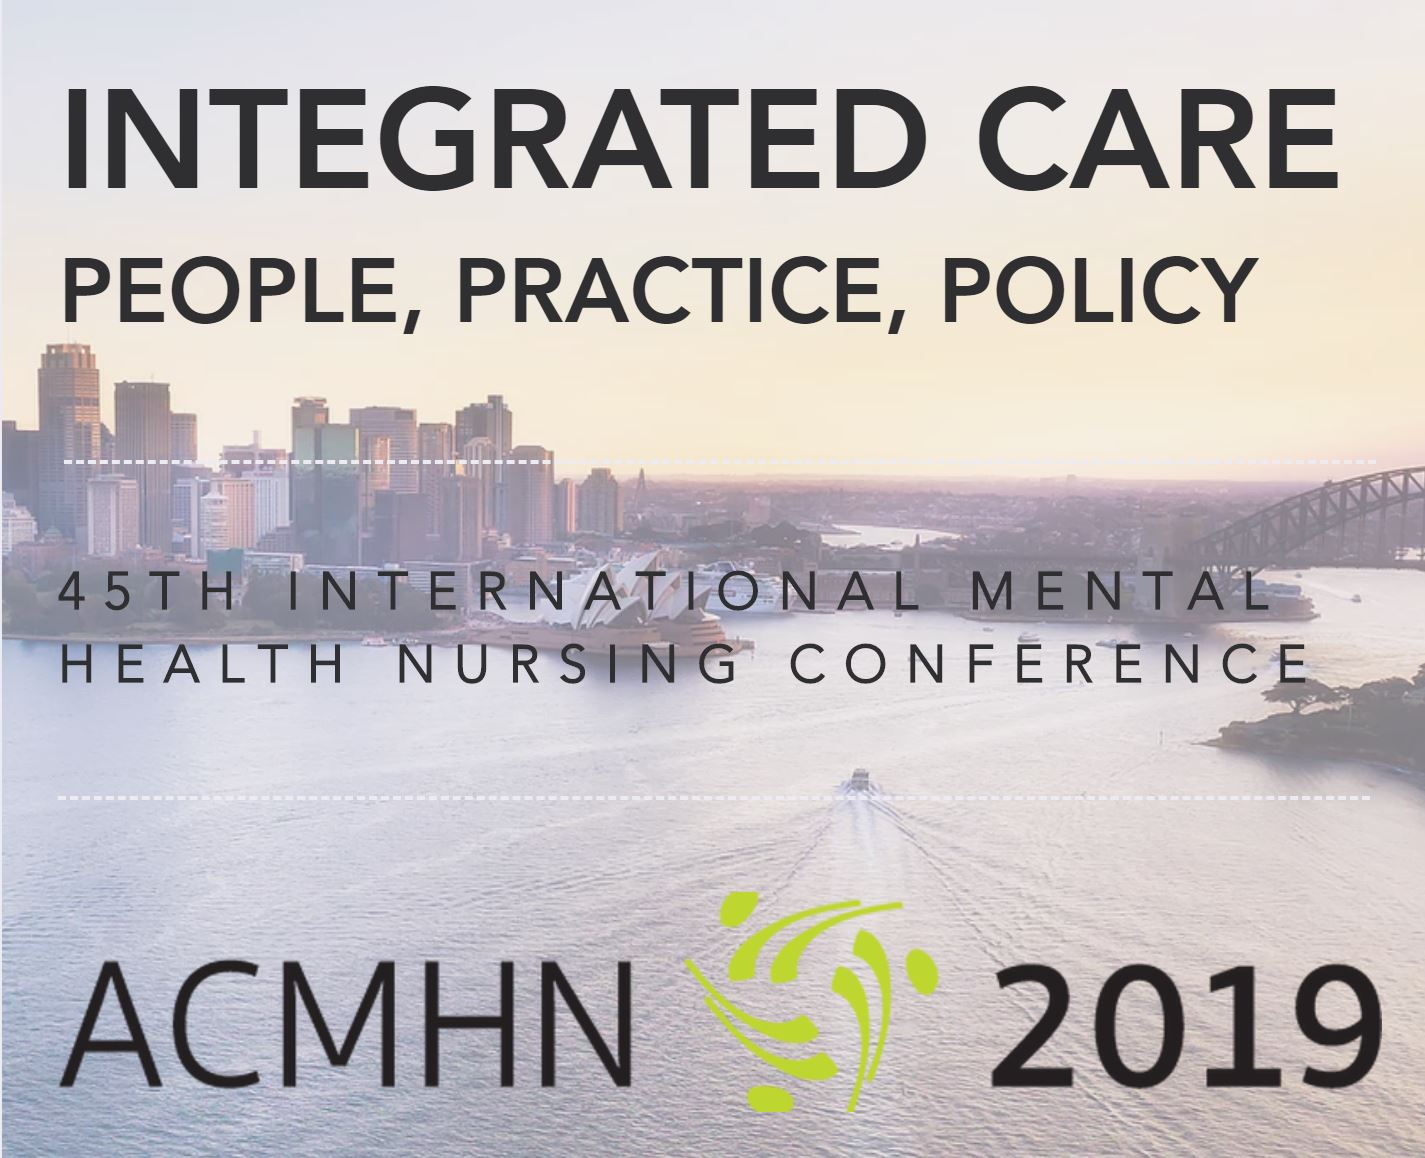 ACMHN Conference